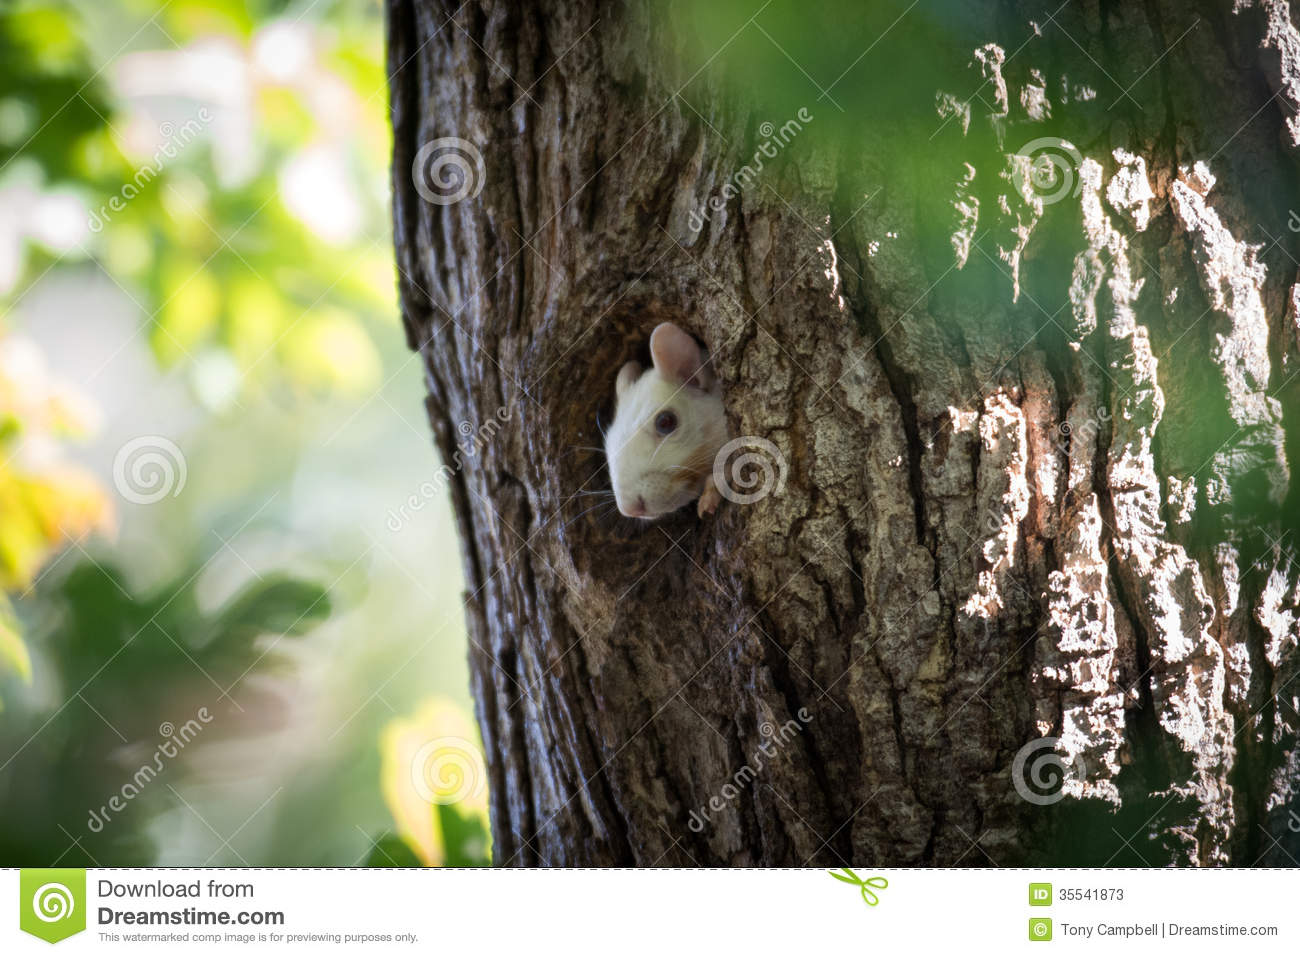 White Squirrel peeking out of hole